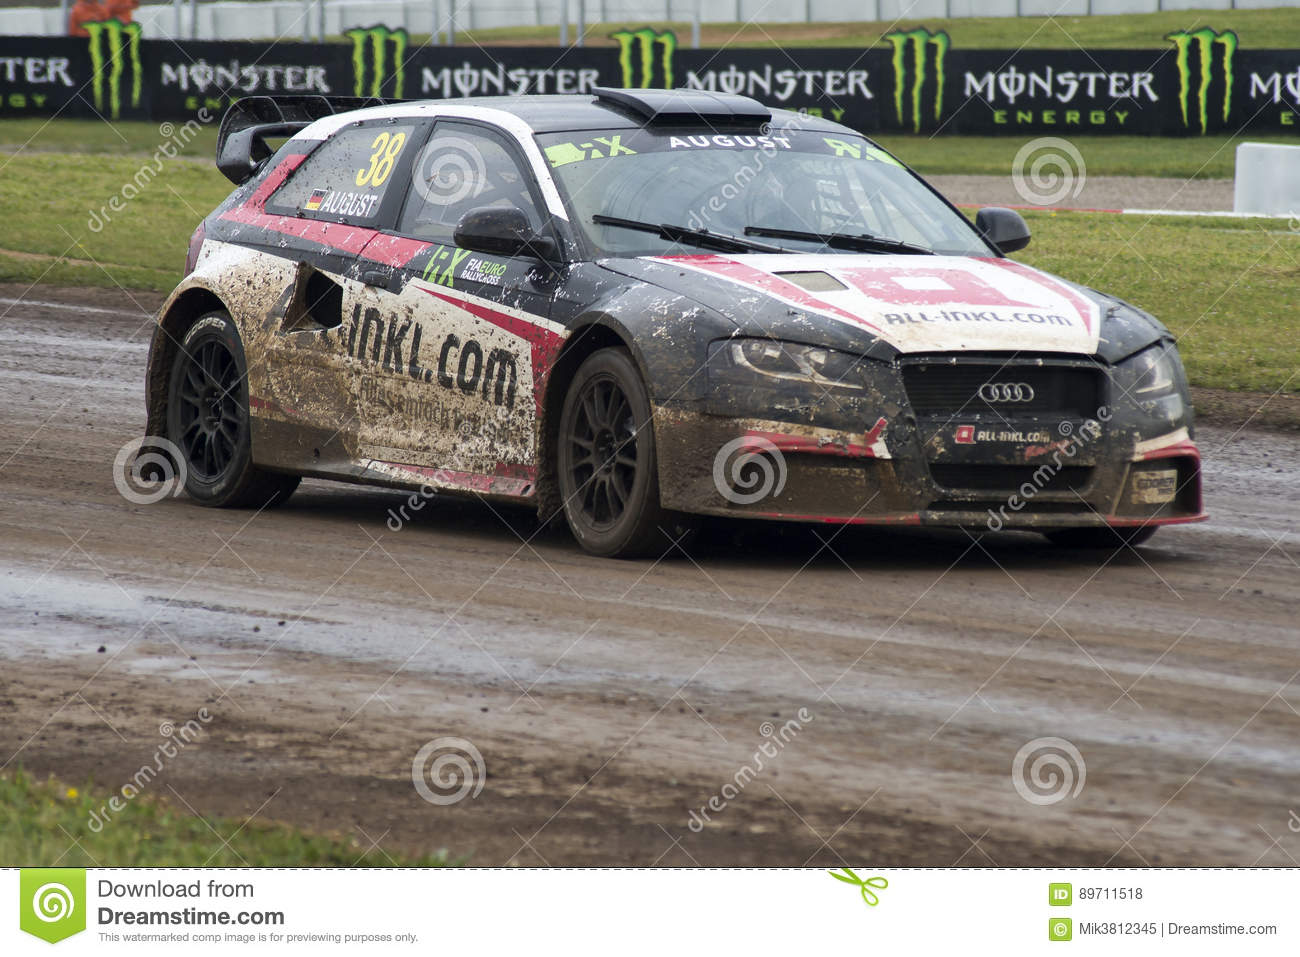 mandie august barcelona fia world rallycross photo stock ditorial image du racetrack session. Black Bedroom Furniture Sets. Home Design Ideas